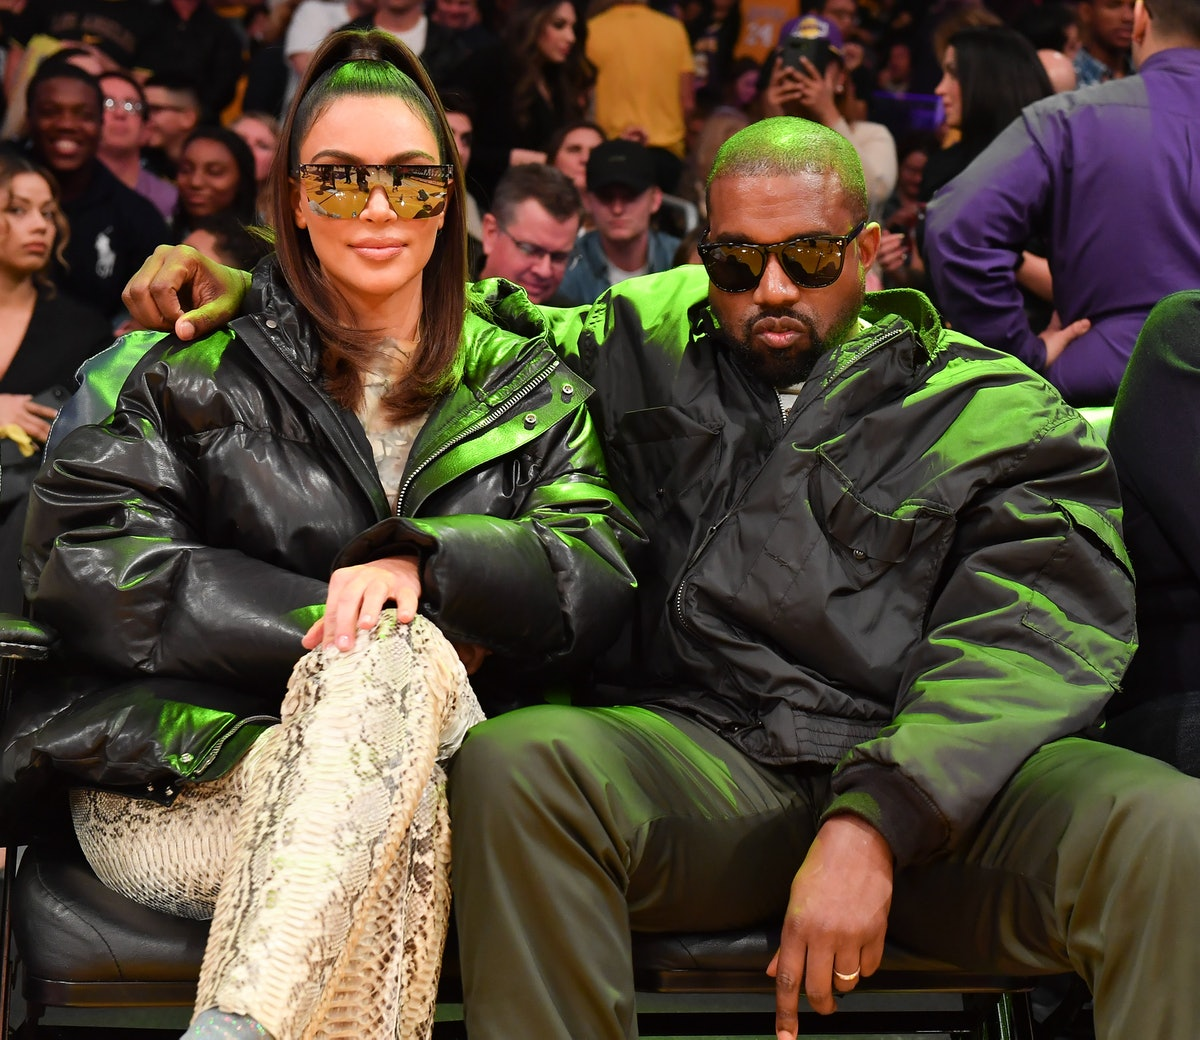 LOS ANGELES, CALIFORNIA - JANUARY 13: Kim Kardashian and Kanye West attend a basketball game between...